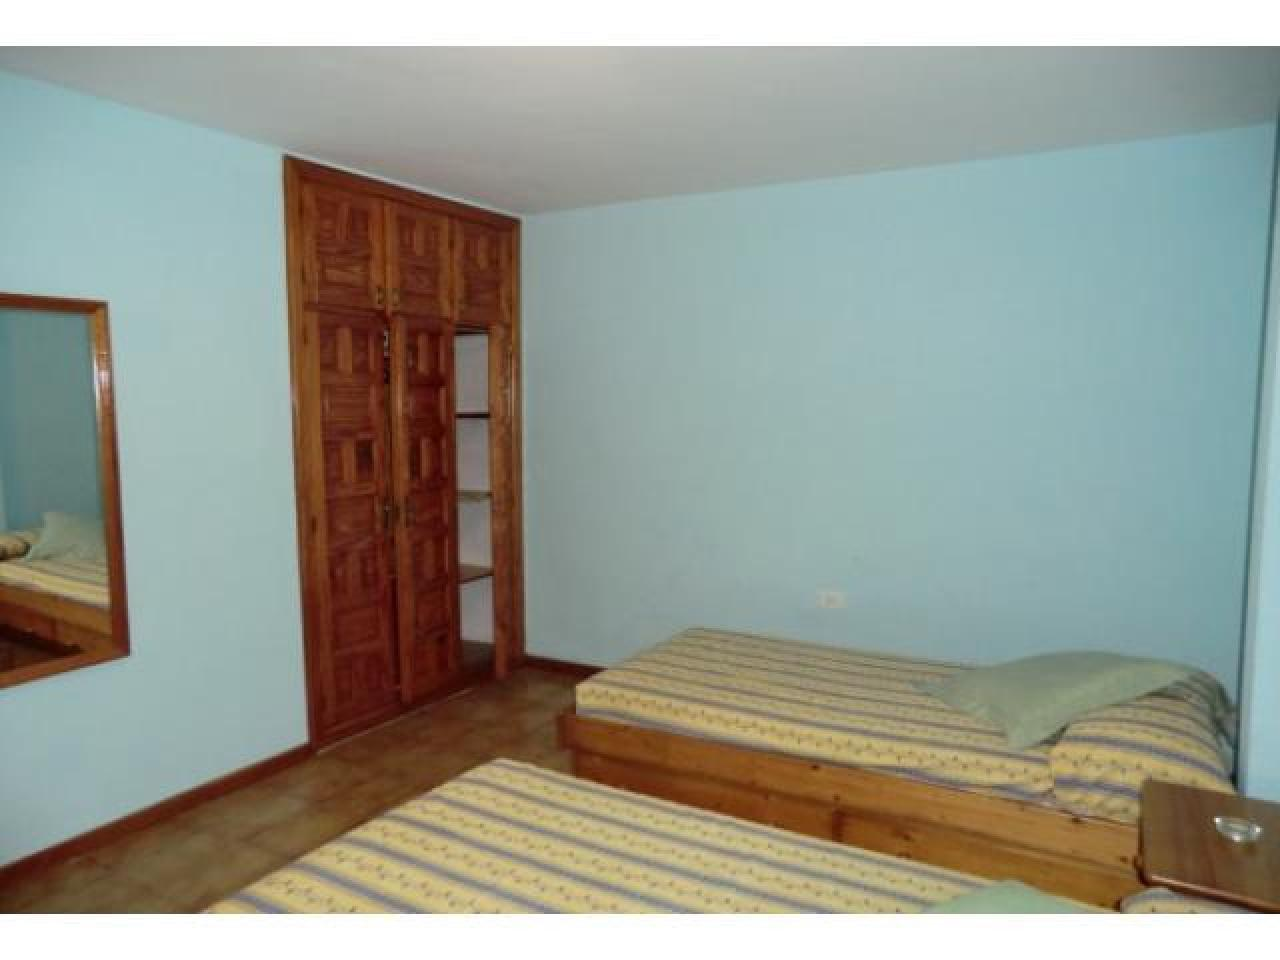 Real estate in Tenerife for sale » #157 - 5